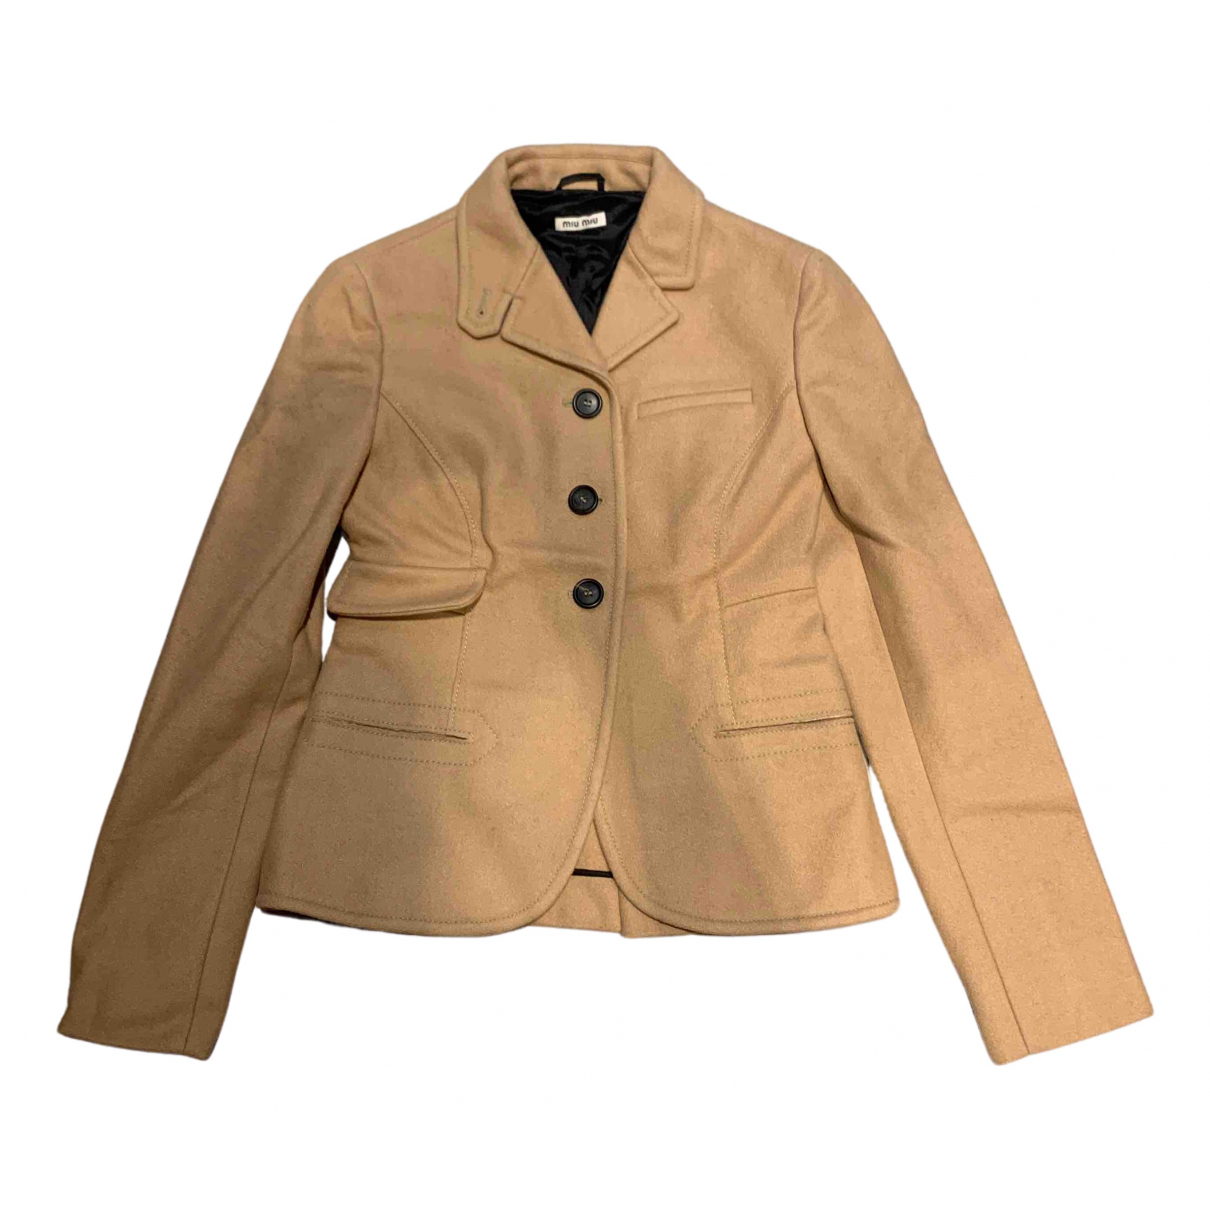 Miu Miu N Beige Wool jacket for Women 36 IT